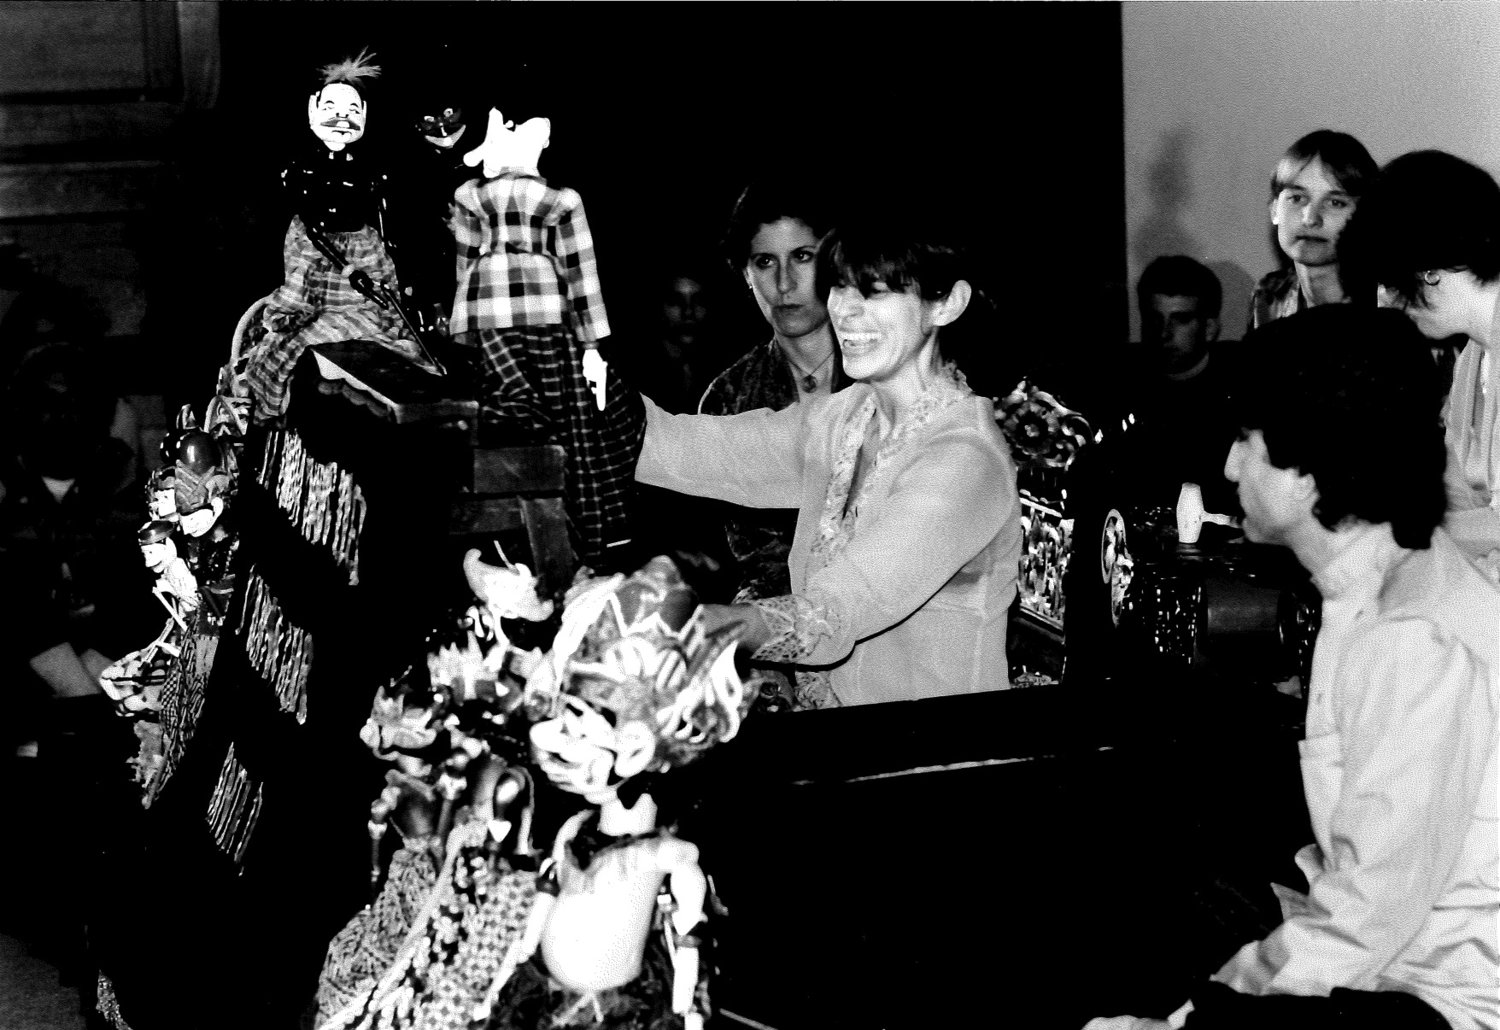 Kathy Foley joue le <em>wayang</em> golek sunda ave<em>c</em> des membres de l'UCSC Gamelan (University of California, Santa Cruz, États-Unis). Photo réproduite avec l'aimable autorisation de Kathy Foley